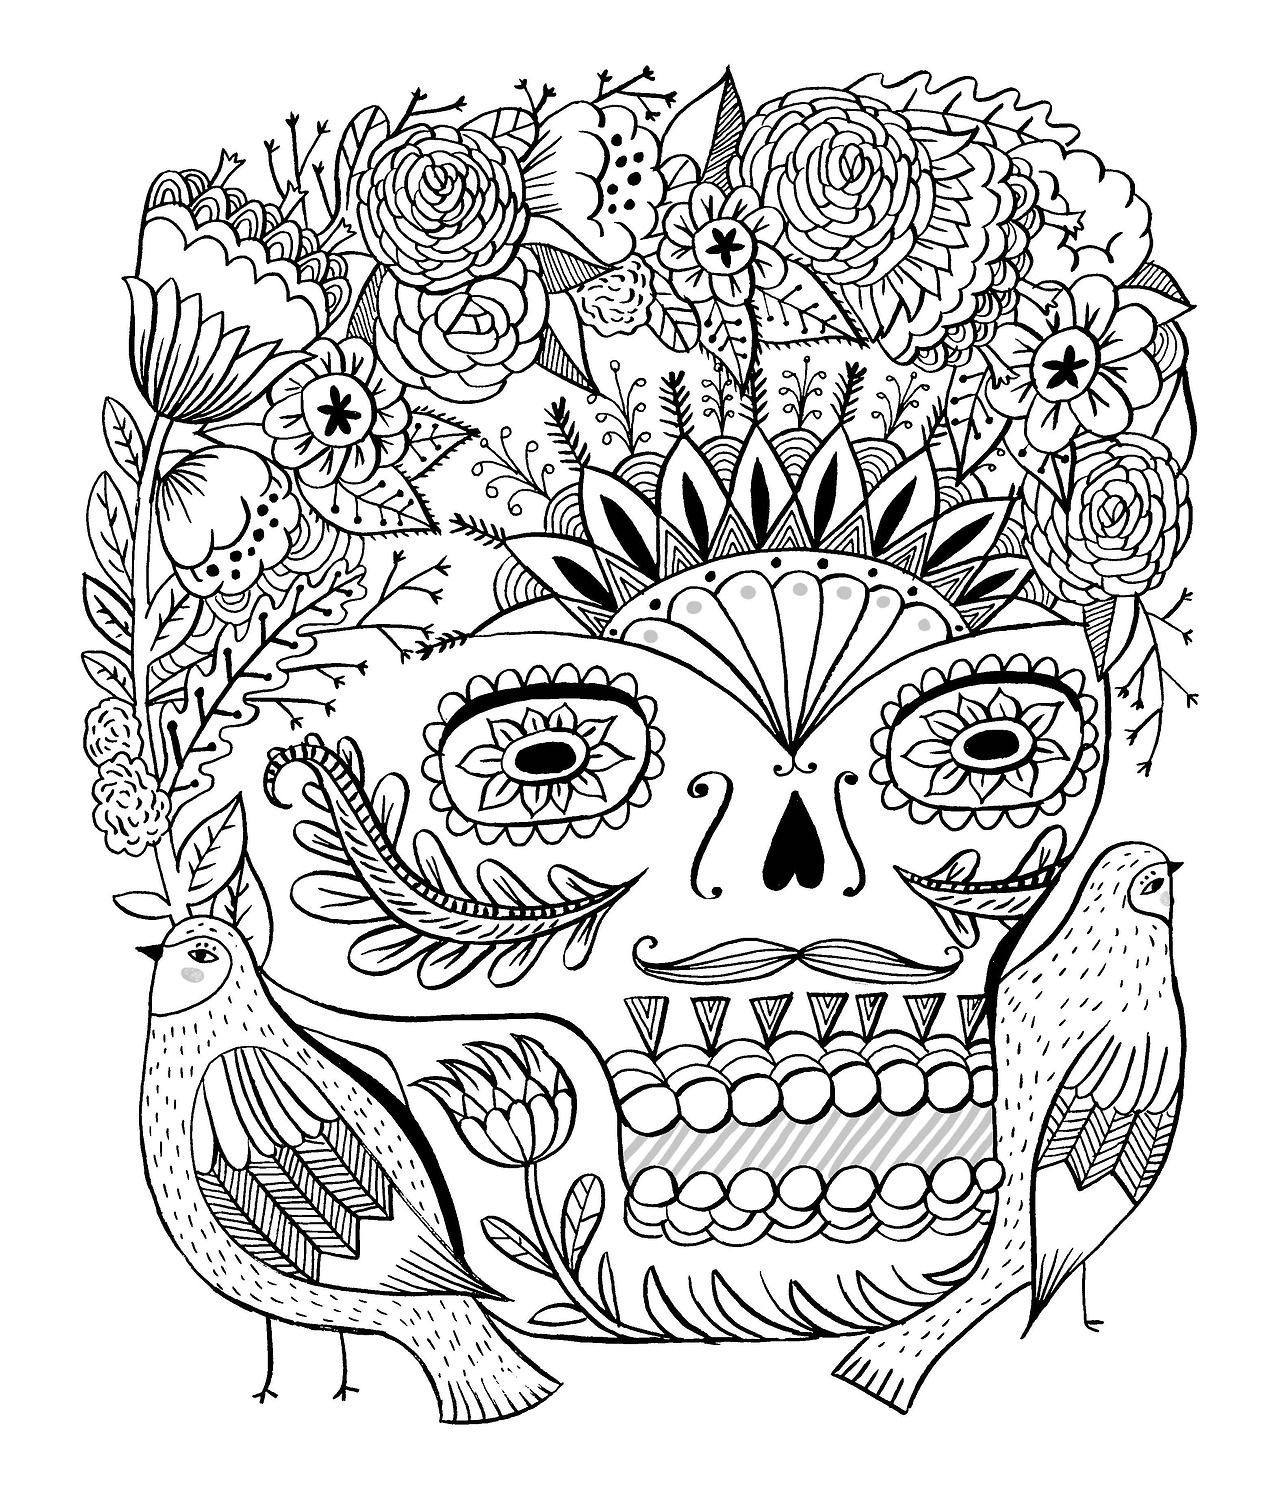 day of the dead/just add color coloringbook by sarah walsh Tumblr ...